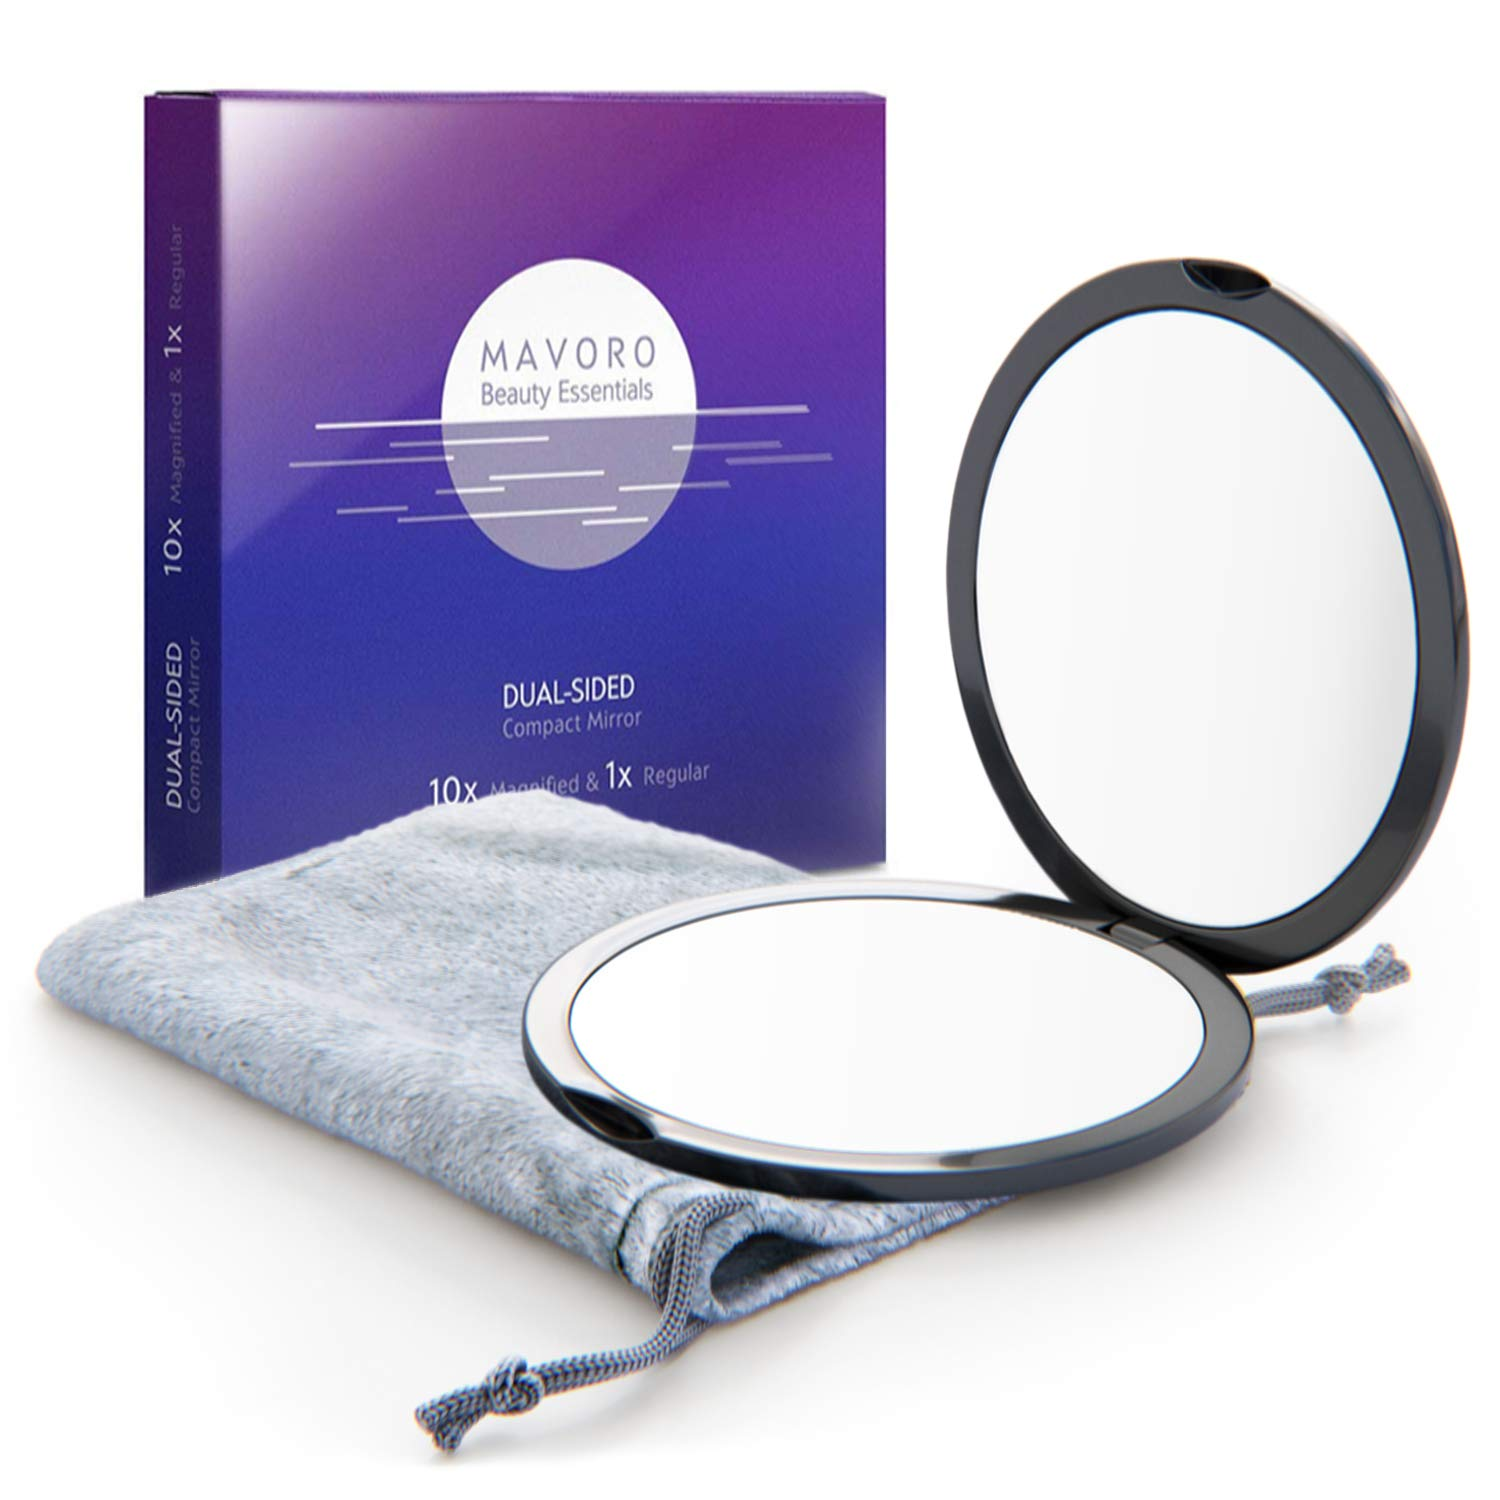 Magnifying Compact Mirror for Purses with 10X Magnification – Black Double Sided Travel Makeup Mirror, 4 Inch Small Pocket Mirror, or Purse Mirror. Distortion Free Folding Portable Compact Mirrors